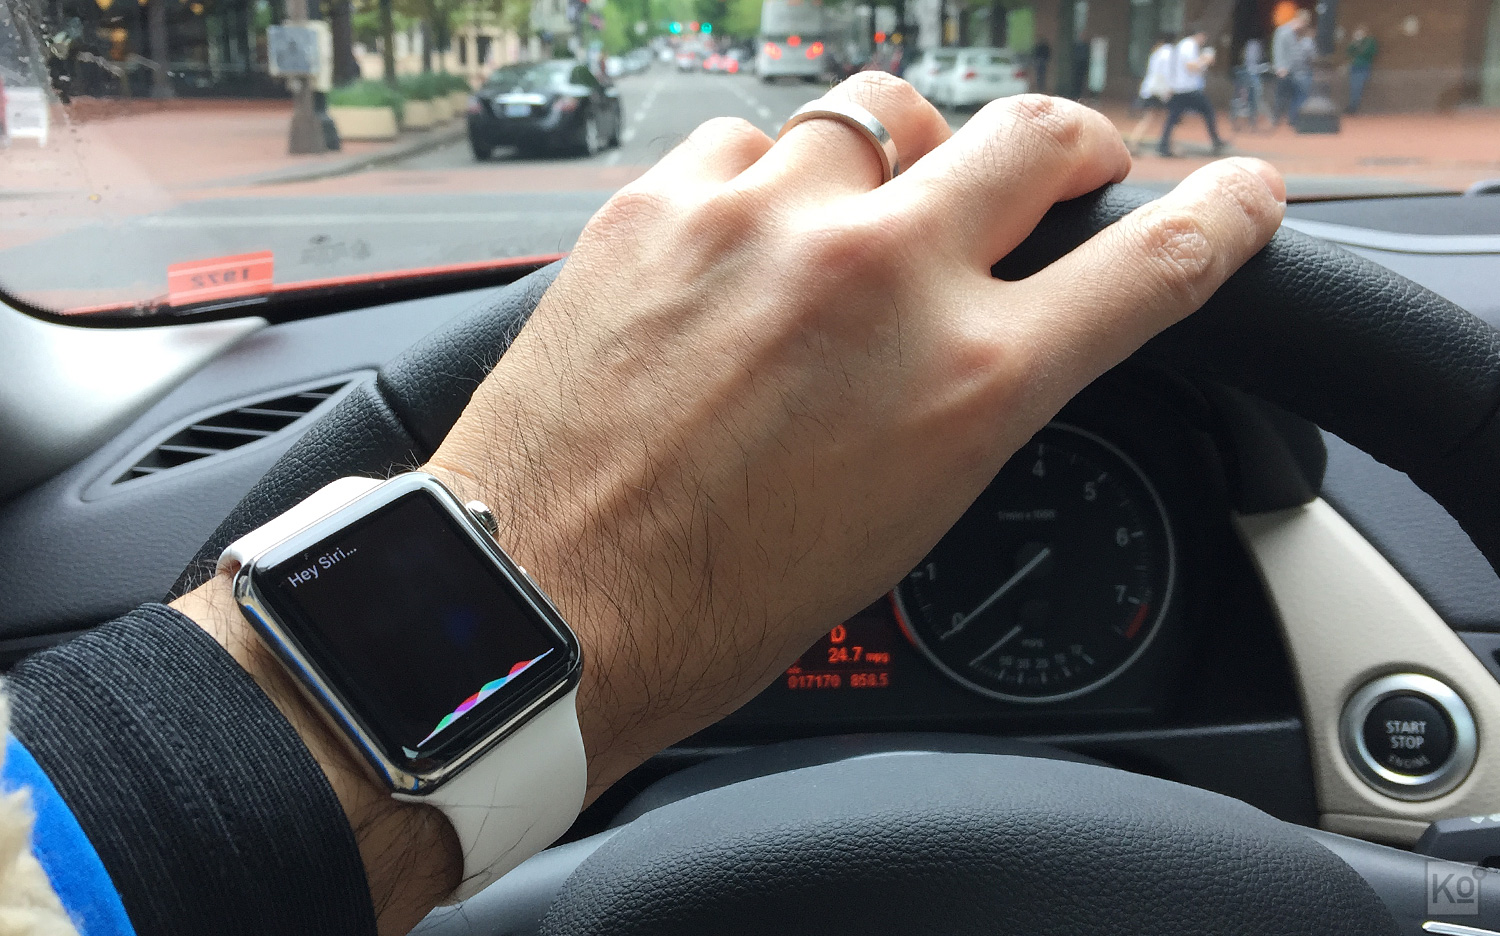 While I didn't have a chance to mention it in the body of my review, Siri seems to be more accurate and effective when invoked via my Watch versus my iPhone 6 Plus. I rarely use Siri on my phone, but find myself using the service multiple times a day on my Watch to do things like set timers, play music and dictate text messages.